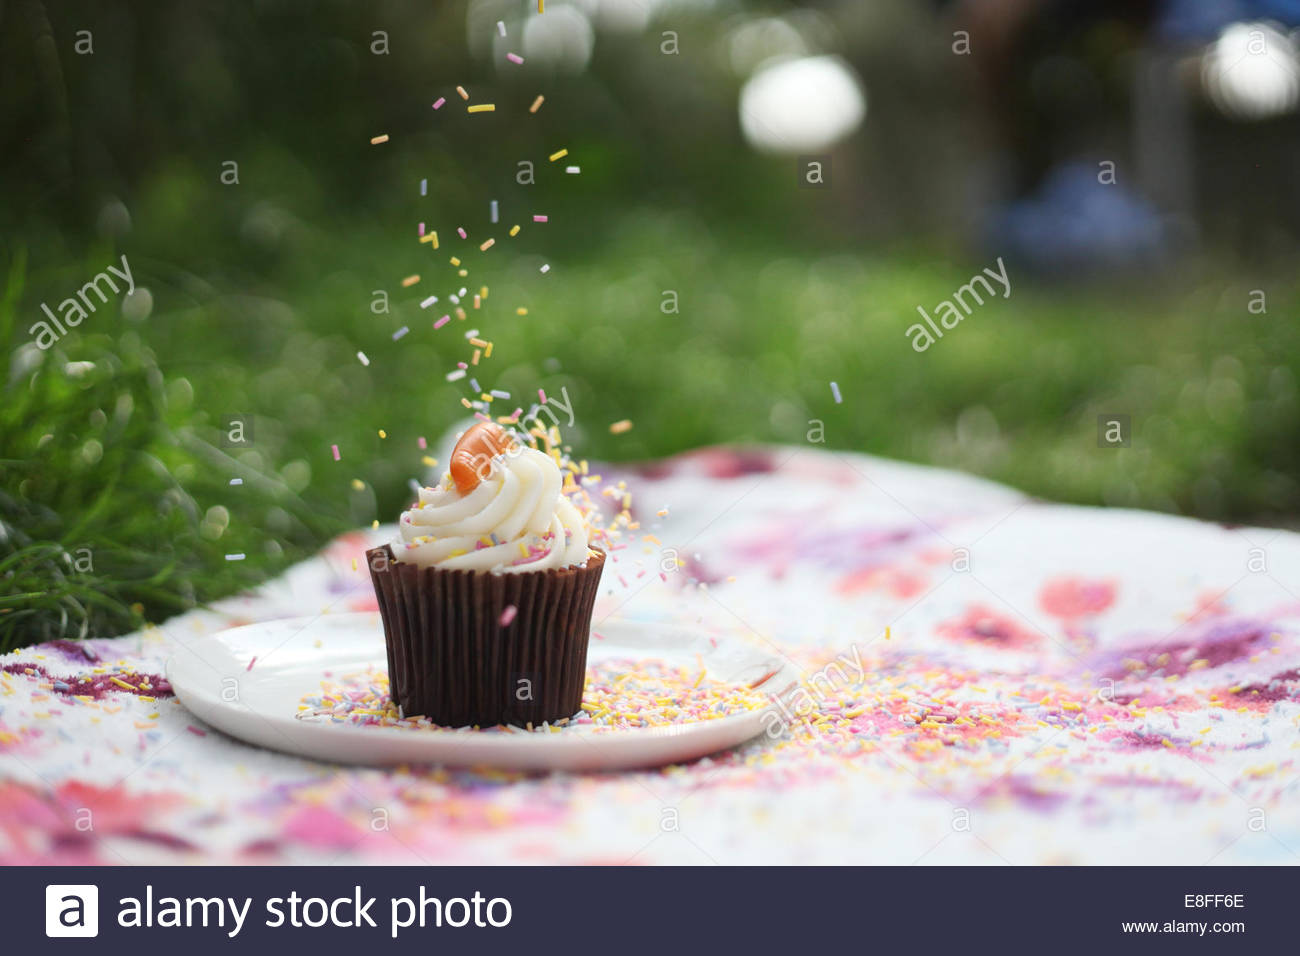 Sprinkling sprinkles on cupcake at picnic - Stock Image